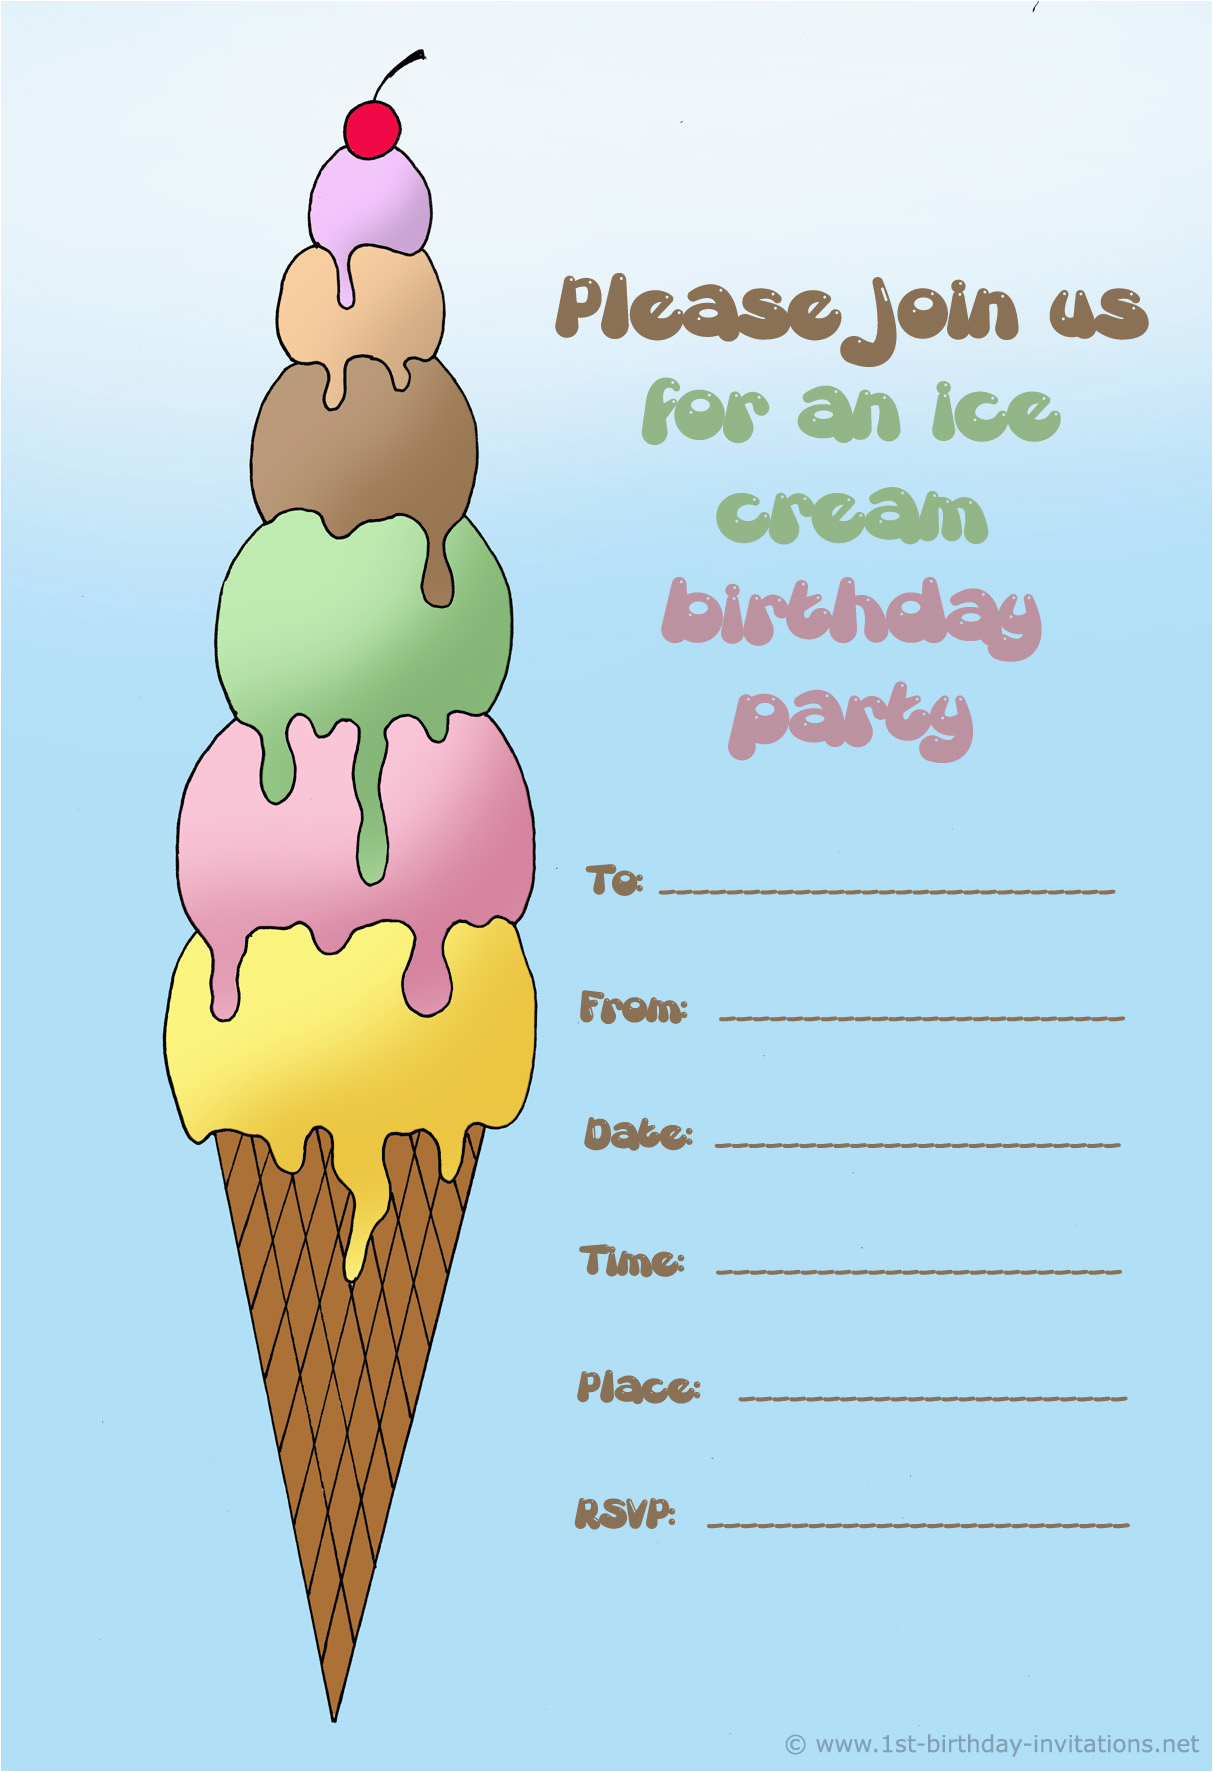 How To Make Birthday Party Invitations Online 14 Printable Many Fun Themes